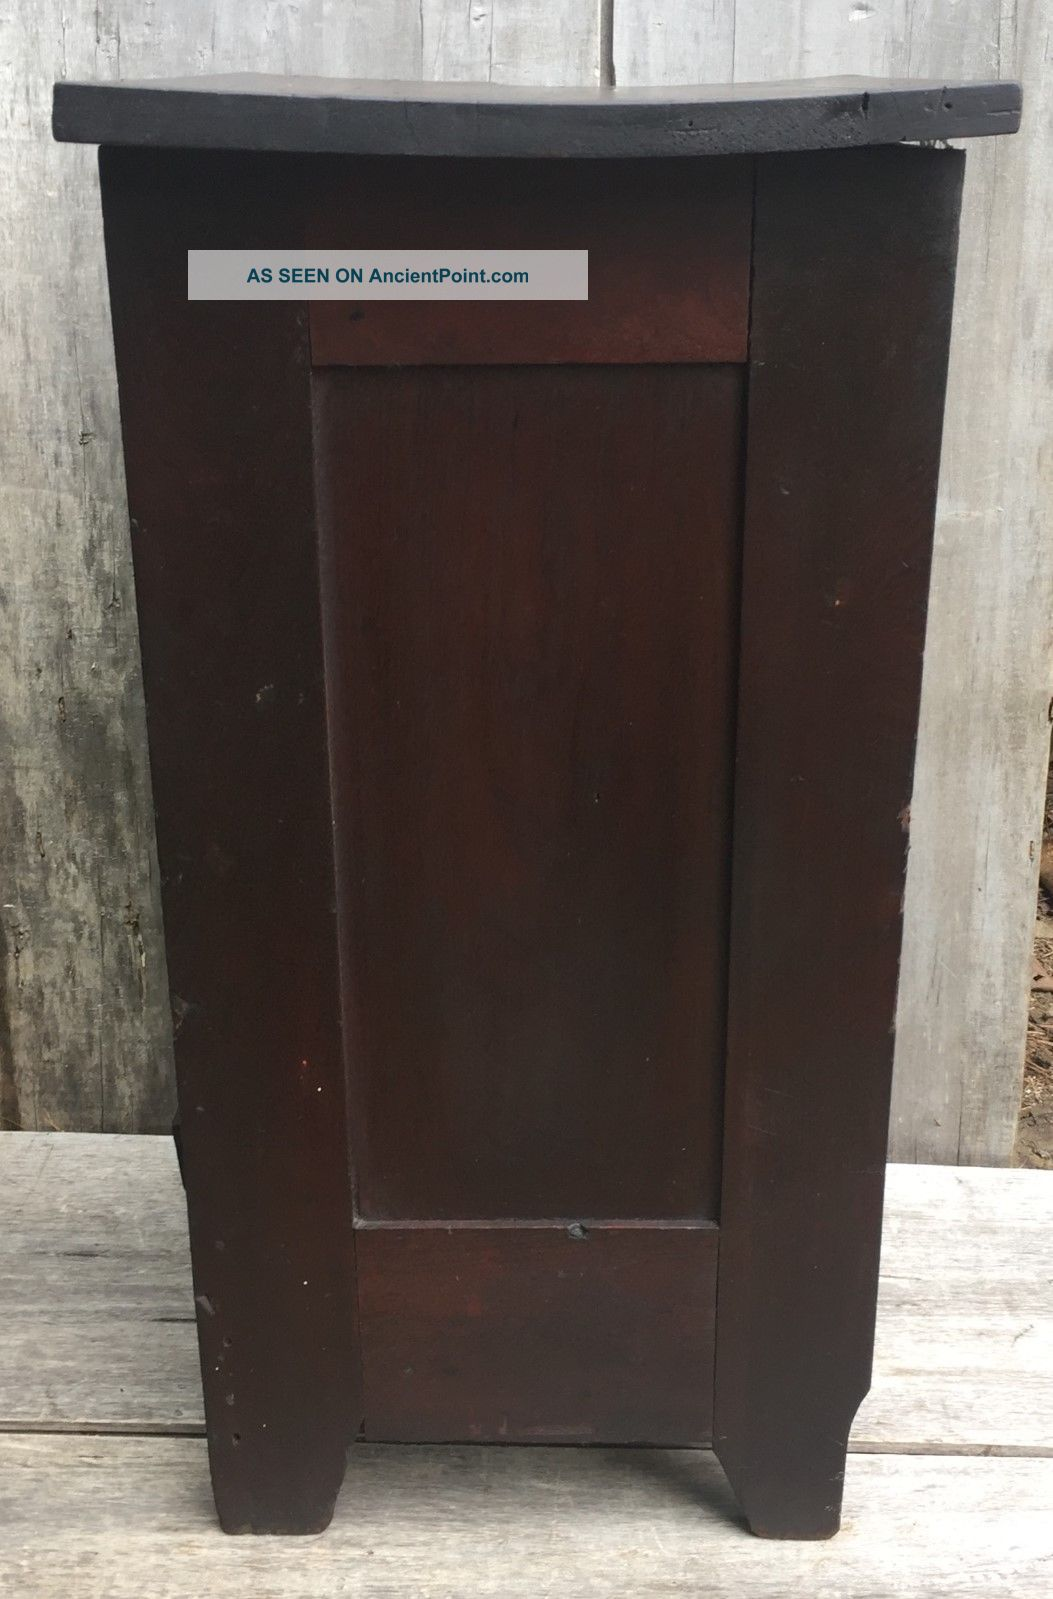 Antique Typesetters Printers Tray Cabinet Table W/ 9 Drawers U0026 Cubby Shelf  1870